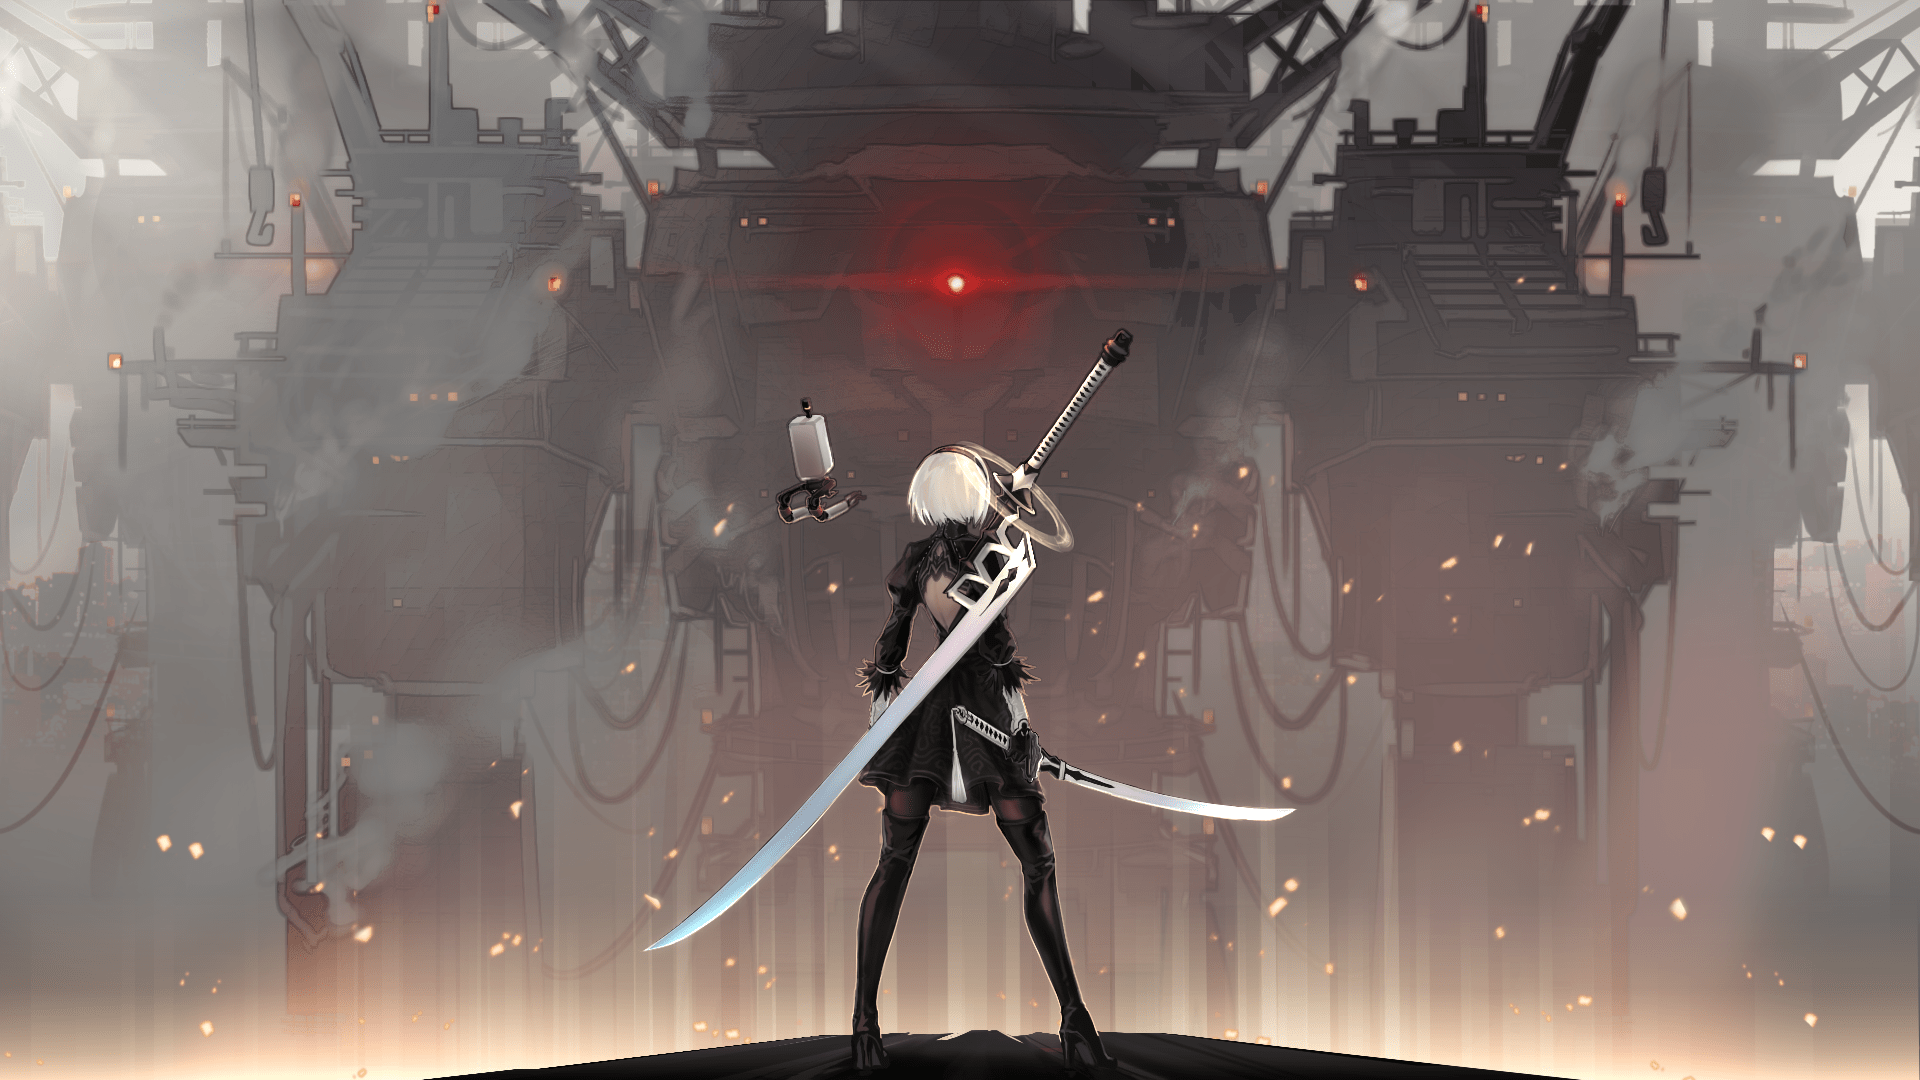 110 nier: automata hd wallpapers | backgrounds - wallpaper abyss